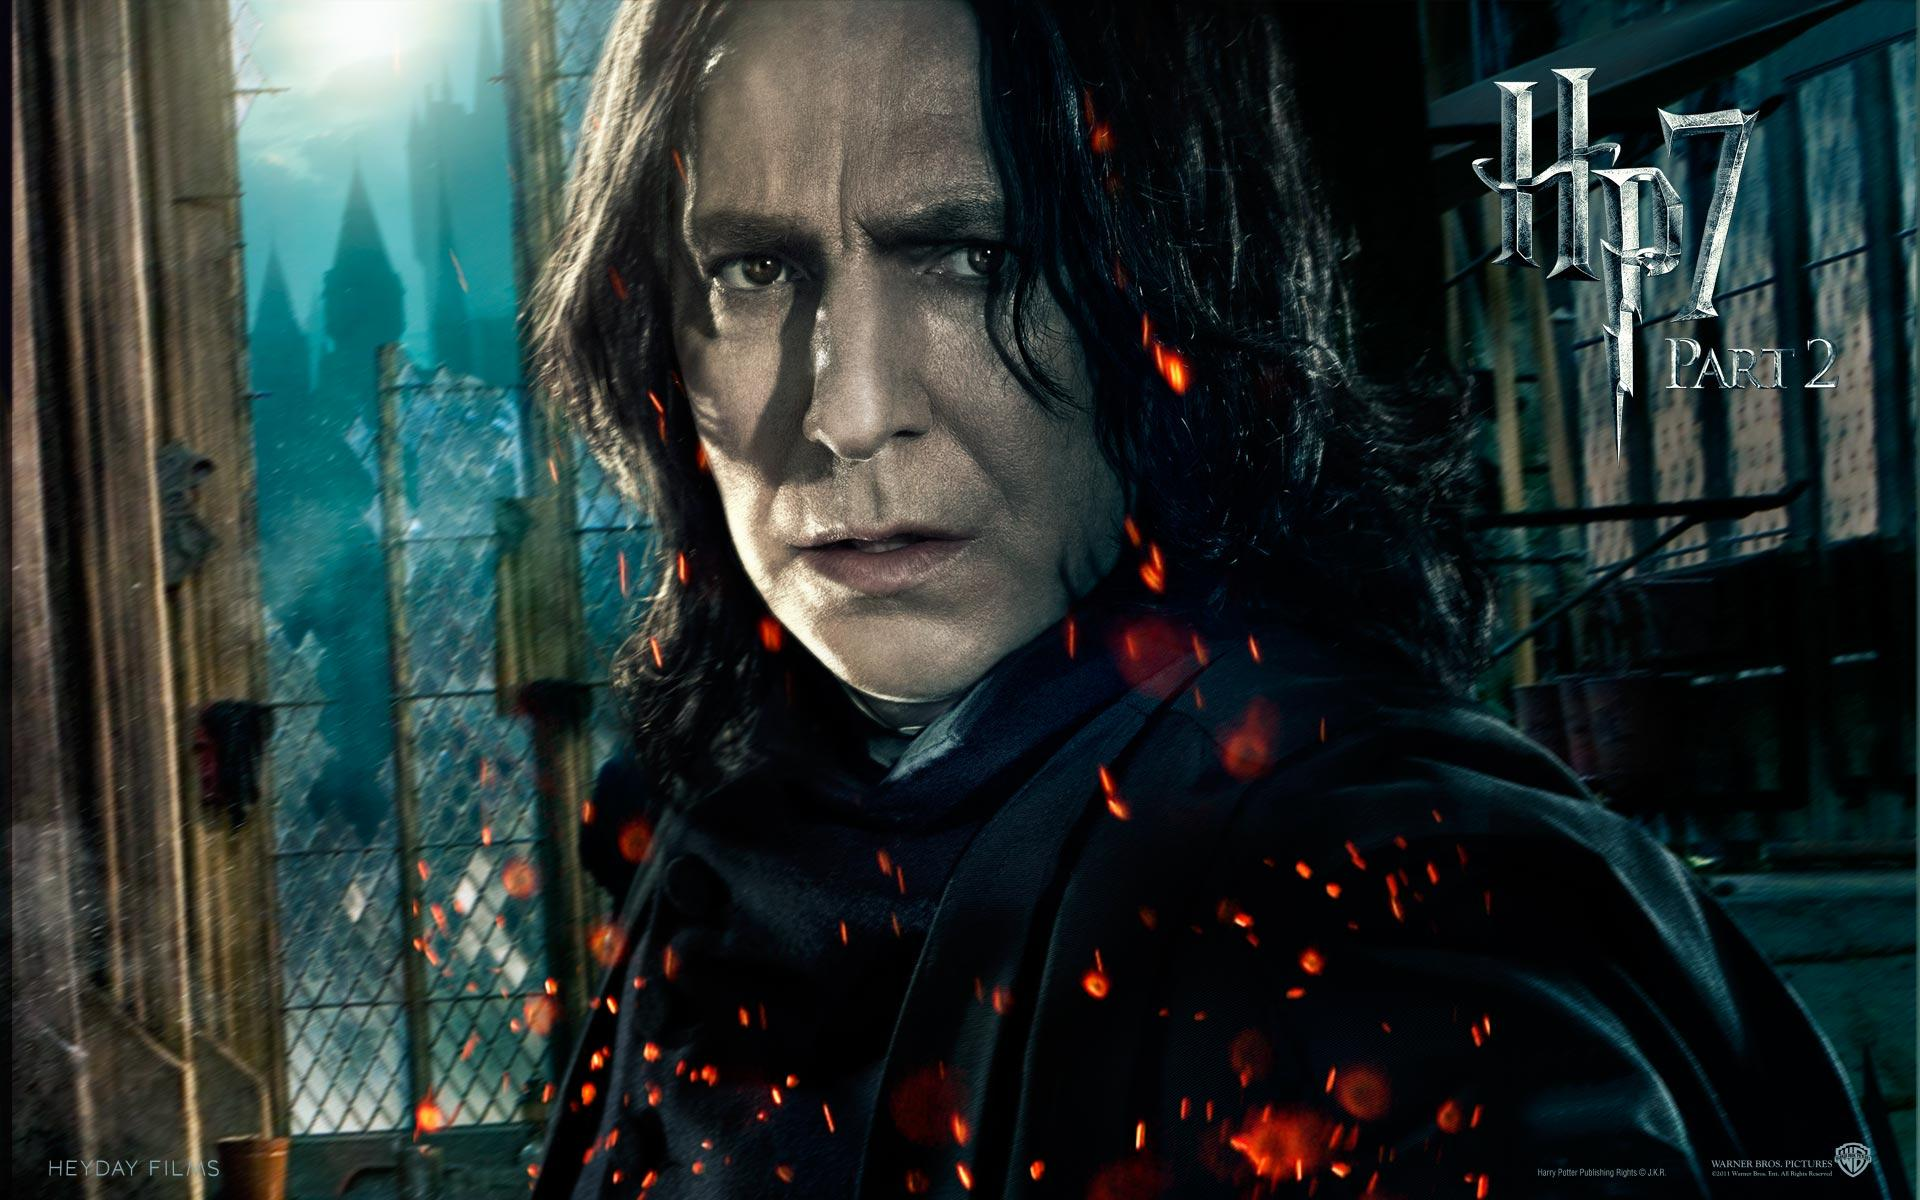 Hd wallpaper harry potter - Deathly Hallows Part Ii Official Wallpapers Harry Potter